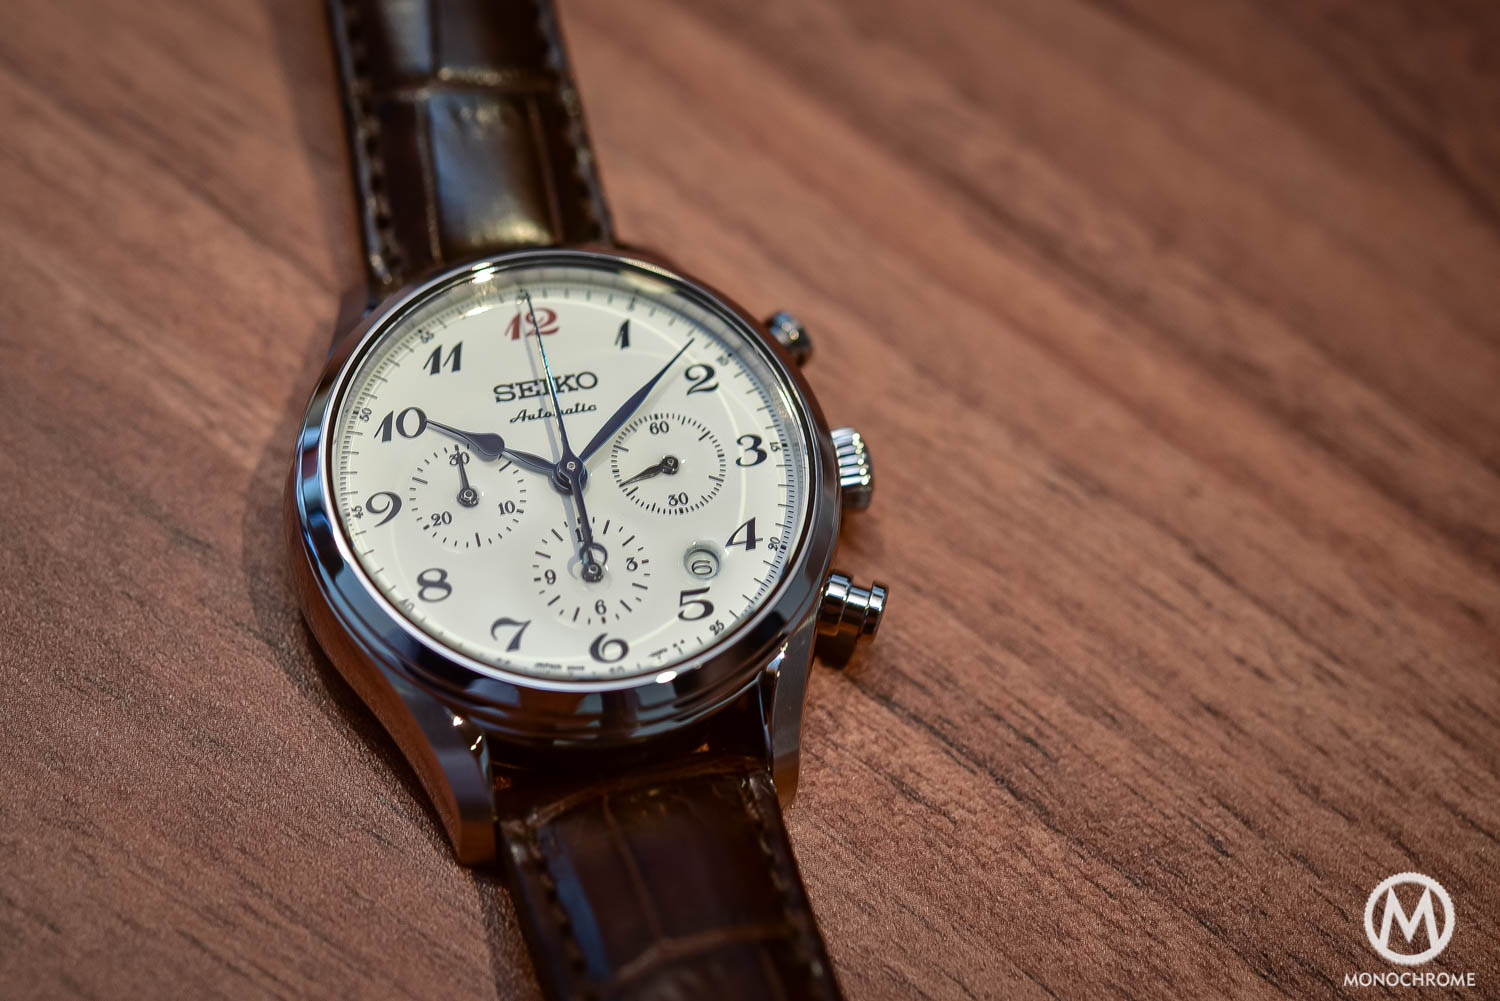 Hands On Seiko Presage 60th Anniversary Chronograph With